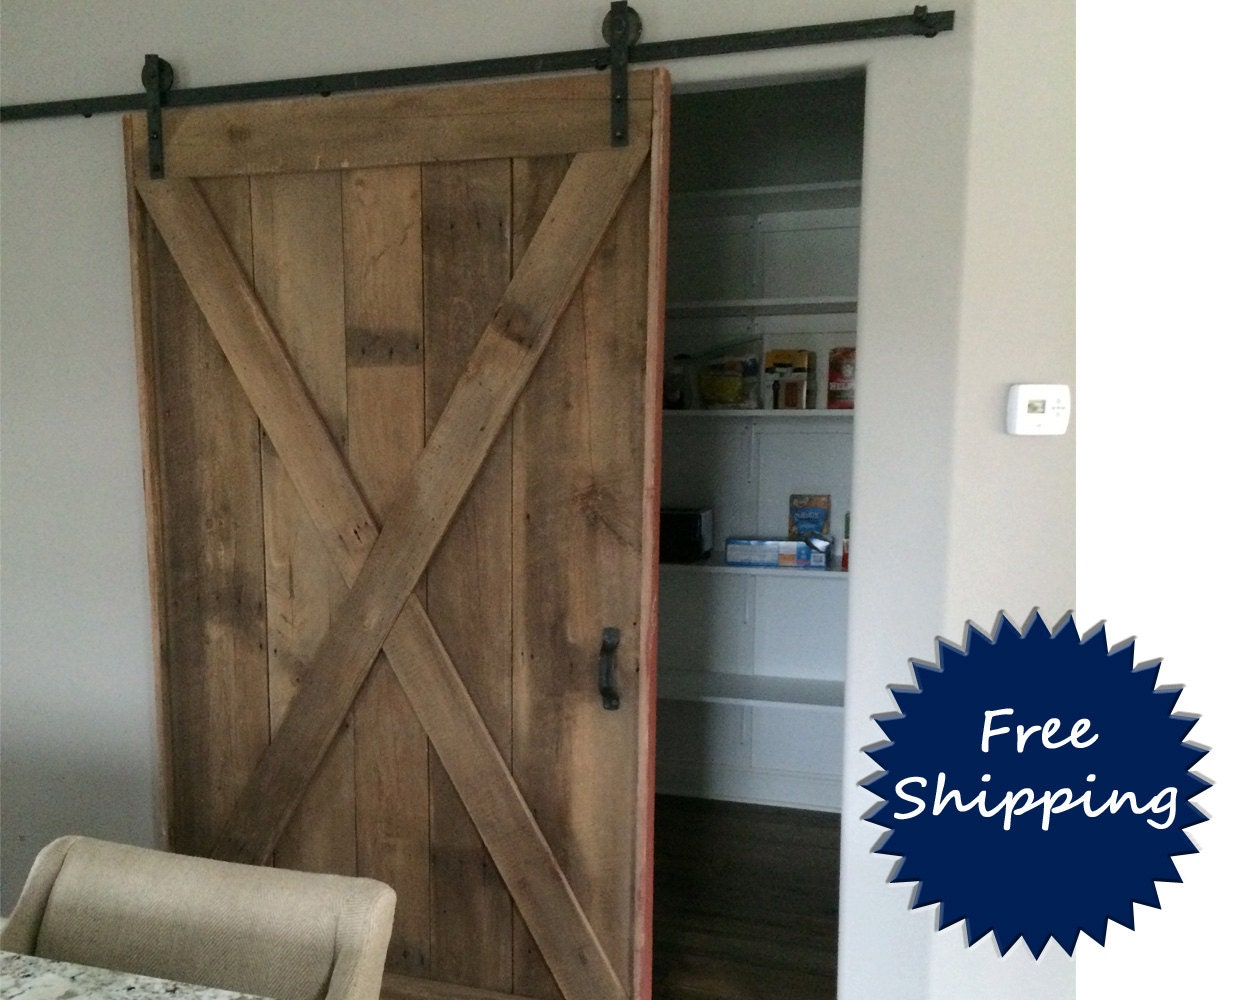 x brace barn door room divider made to order from reclaimed. Black Bedroom Furniture Sets. Home Design Ideas